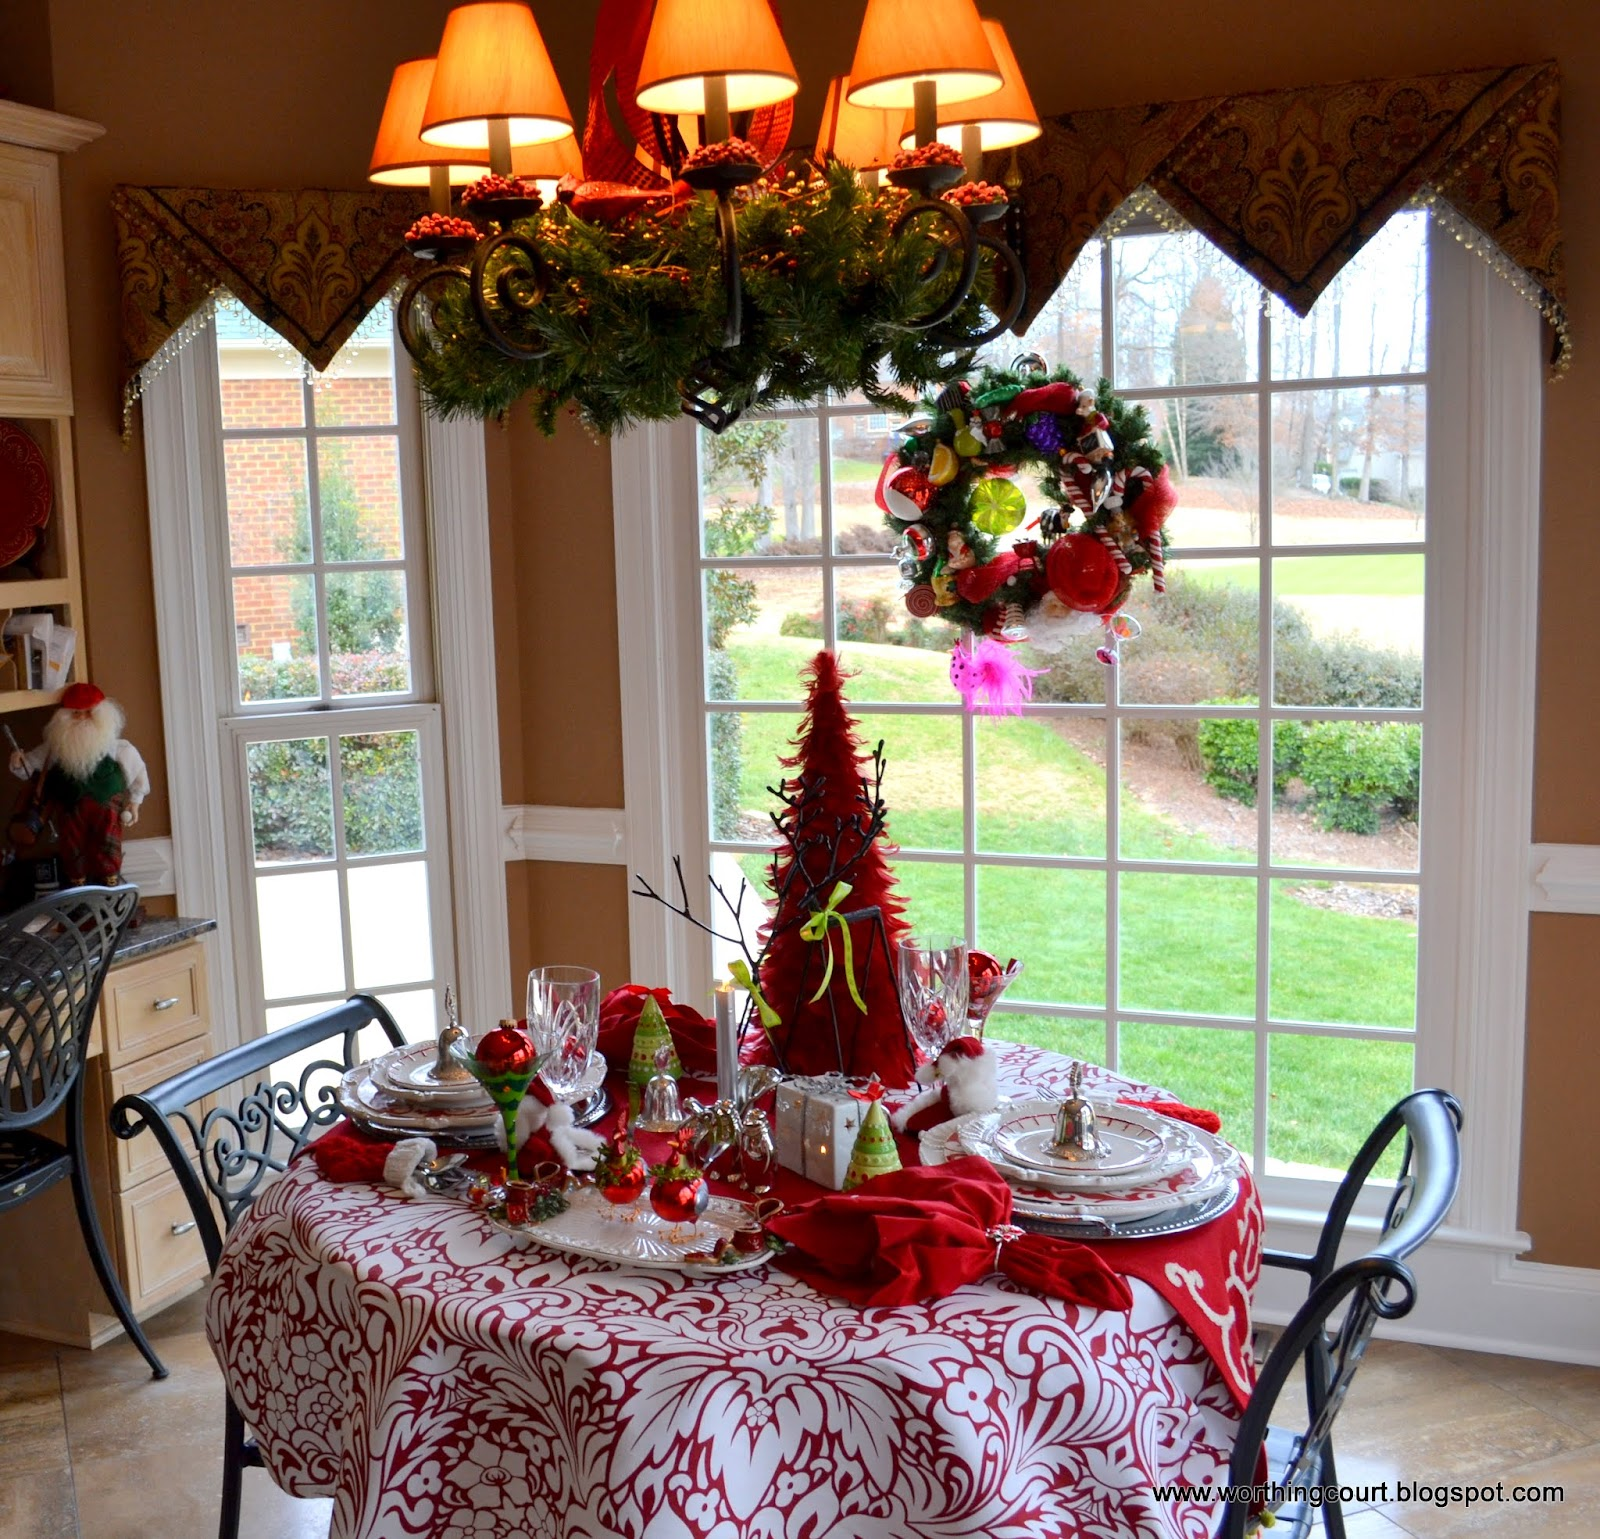 Decoration For Kitchen Table: Christmas In Nancy's Dining Room And Kitchen